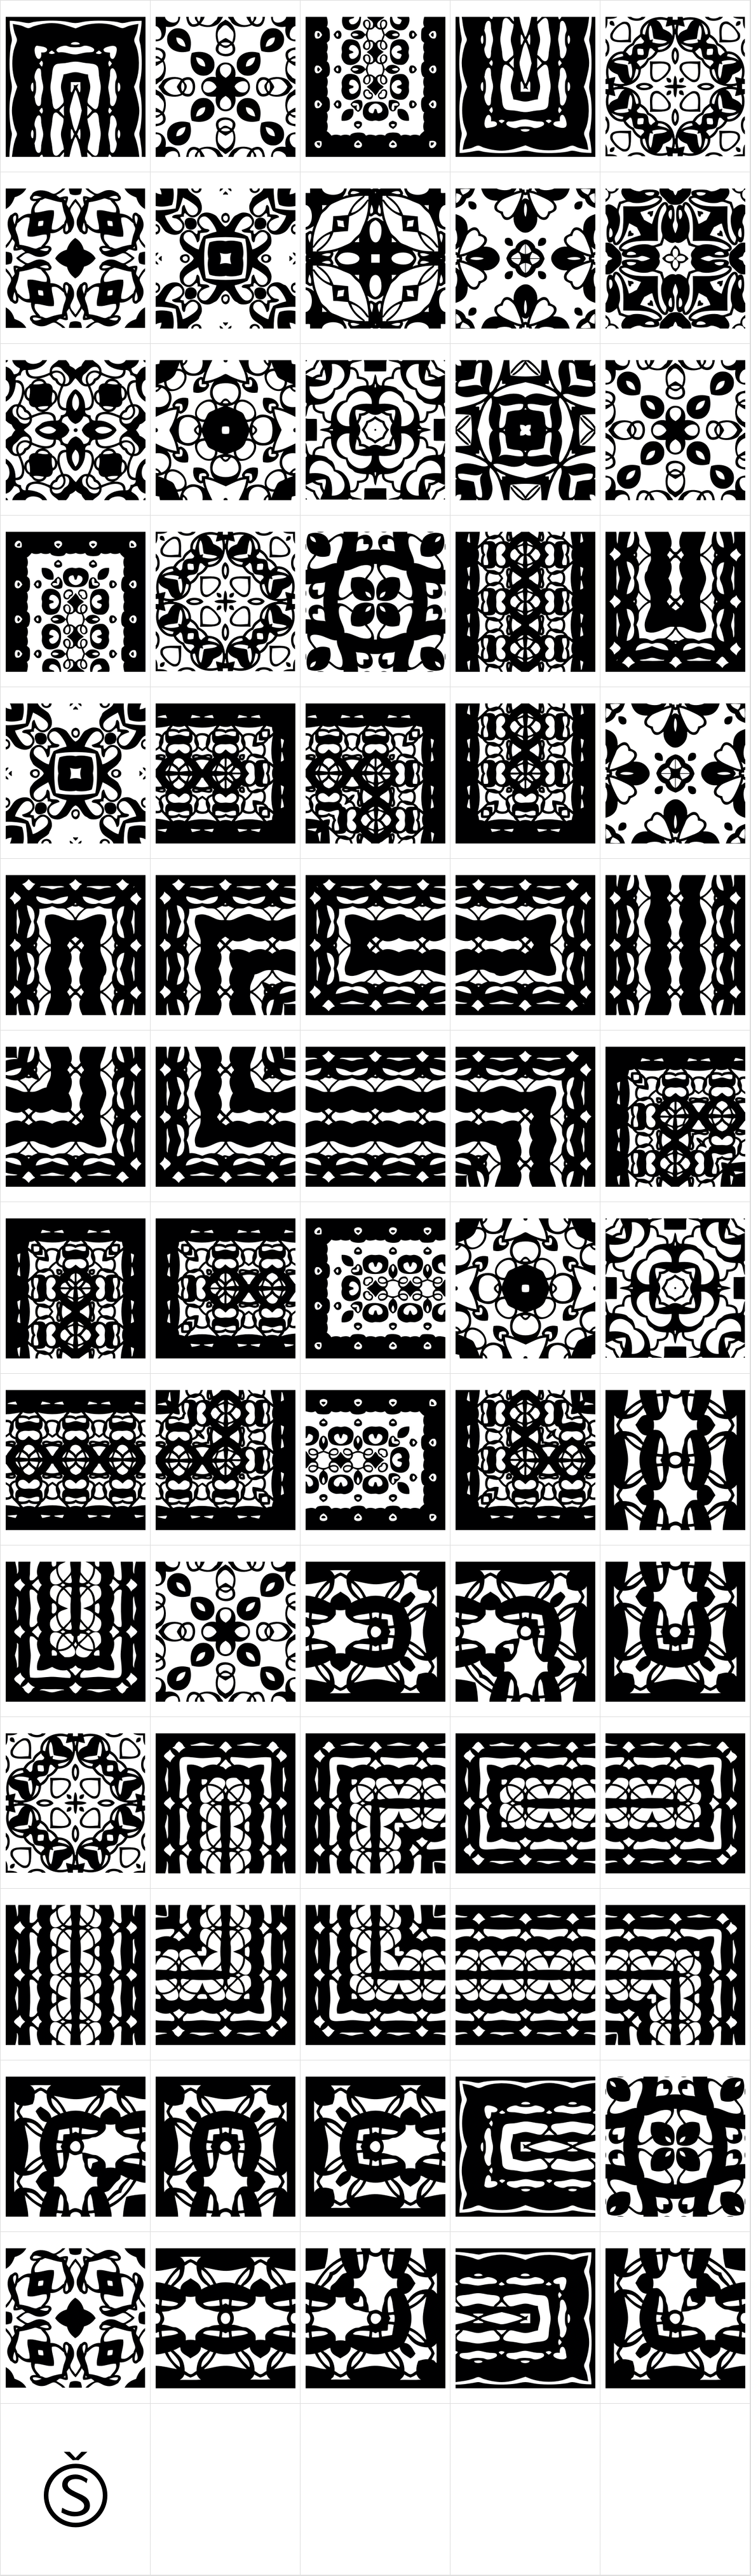 Lady Dodo Patterns